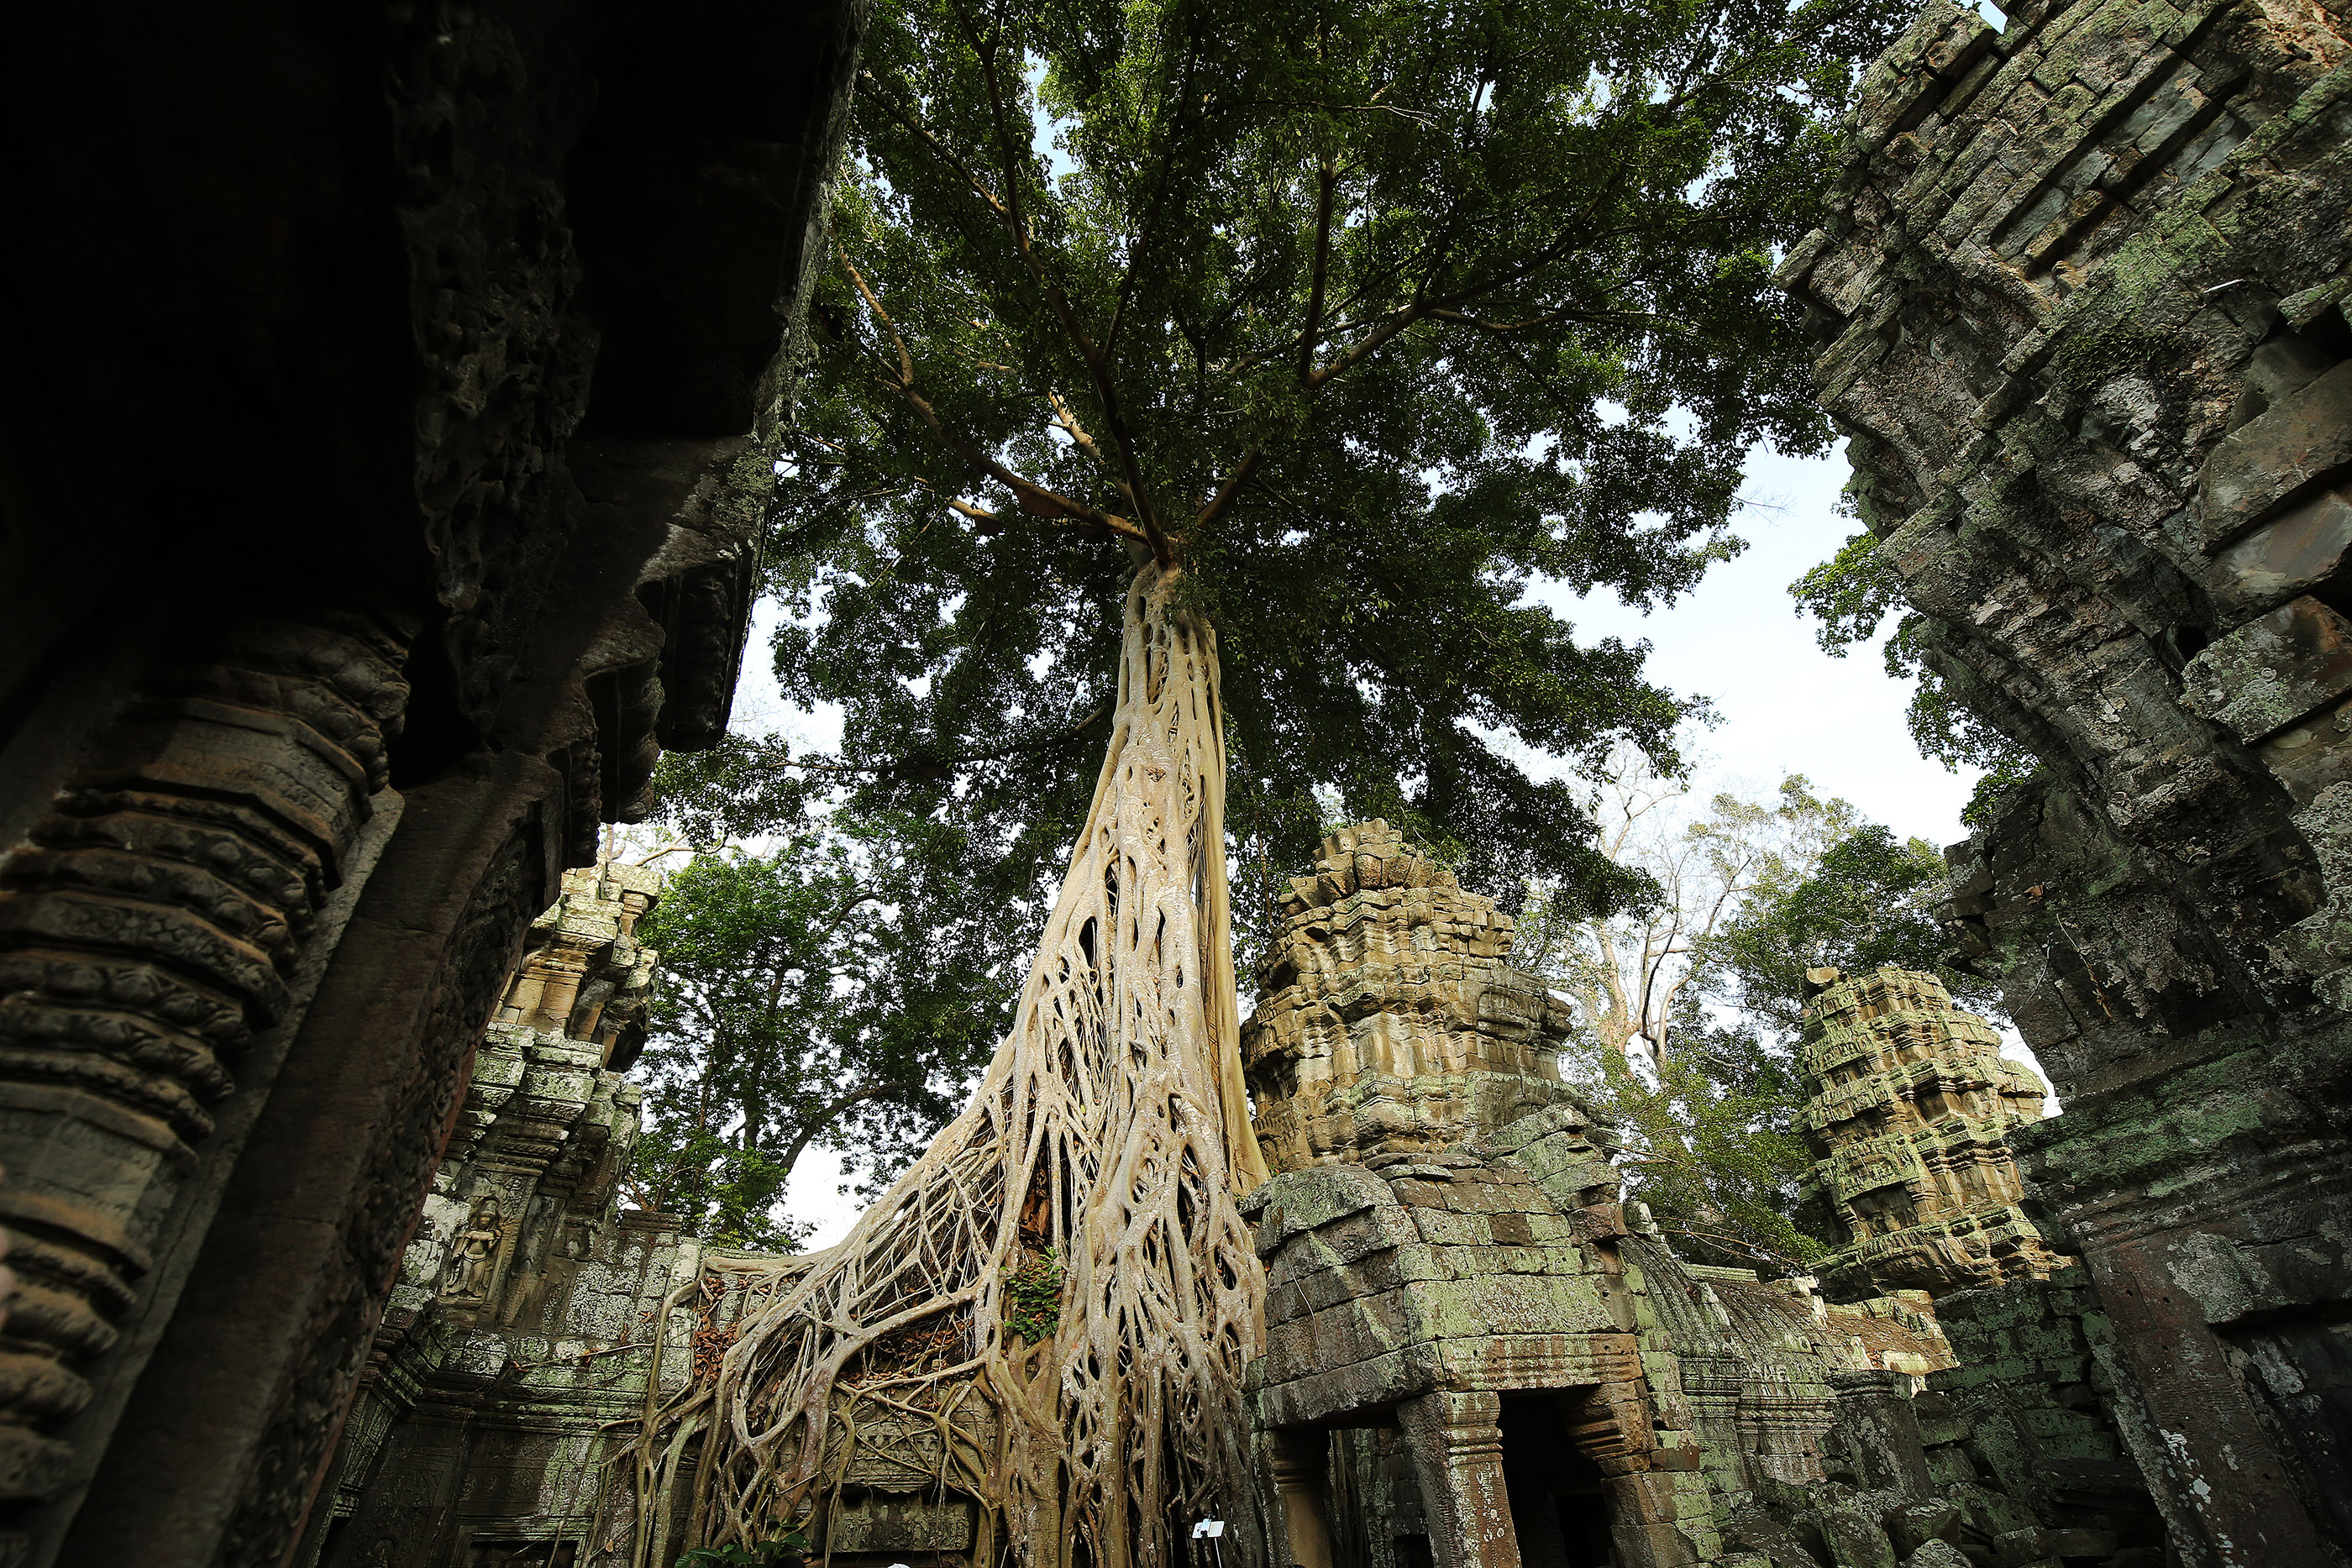 Trees grow around a temple at Angkor Wat in Cambodia on April 28, 2018. Angkor Wat is a 12th century temple complex in Cambodia and the largest religious monument in the world.